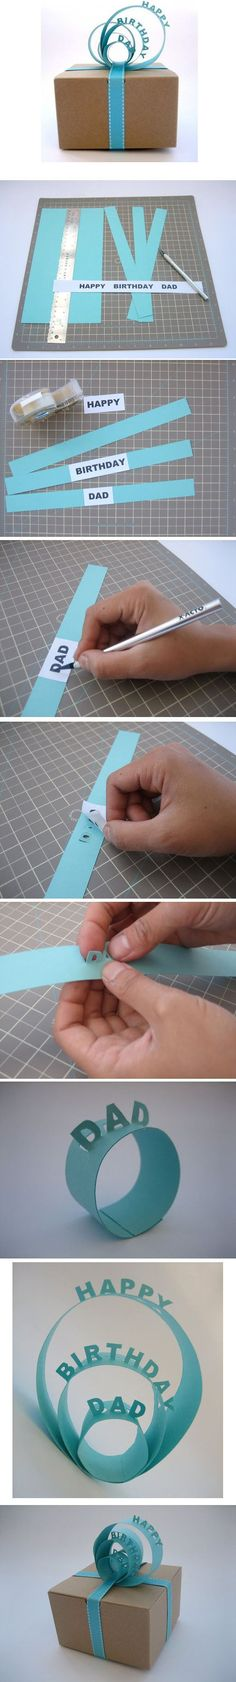 DIY Papel Topper regalo | Ideas Creativas bricolaje